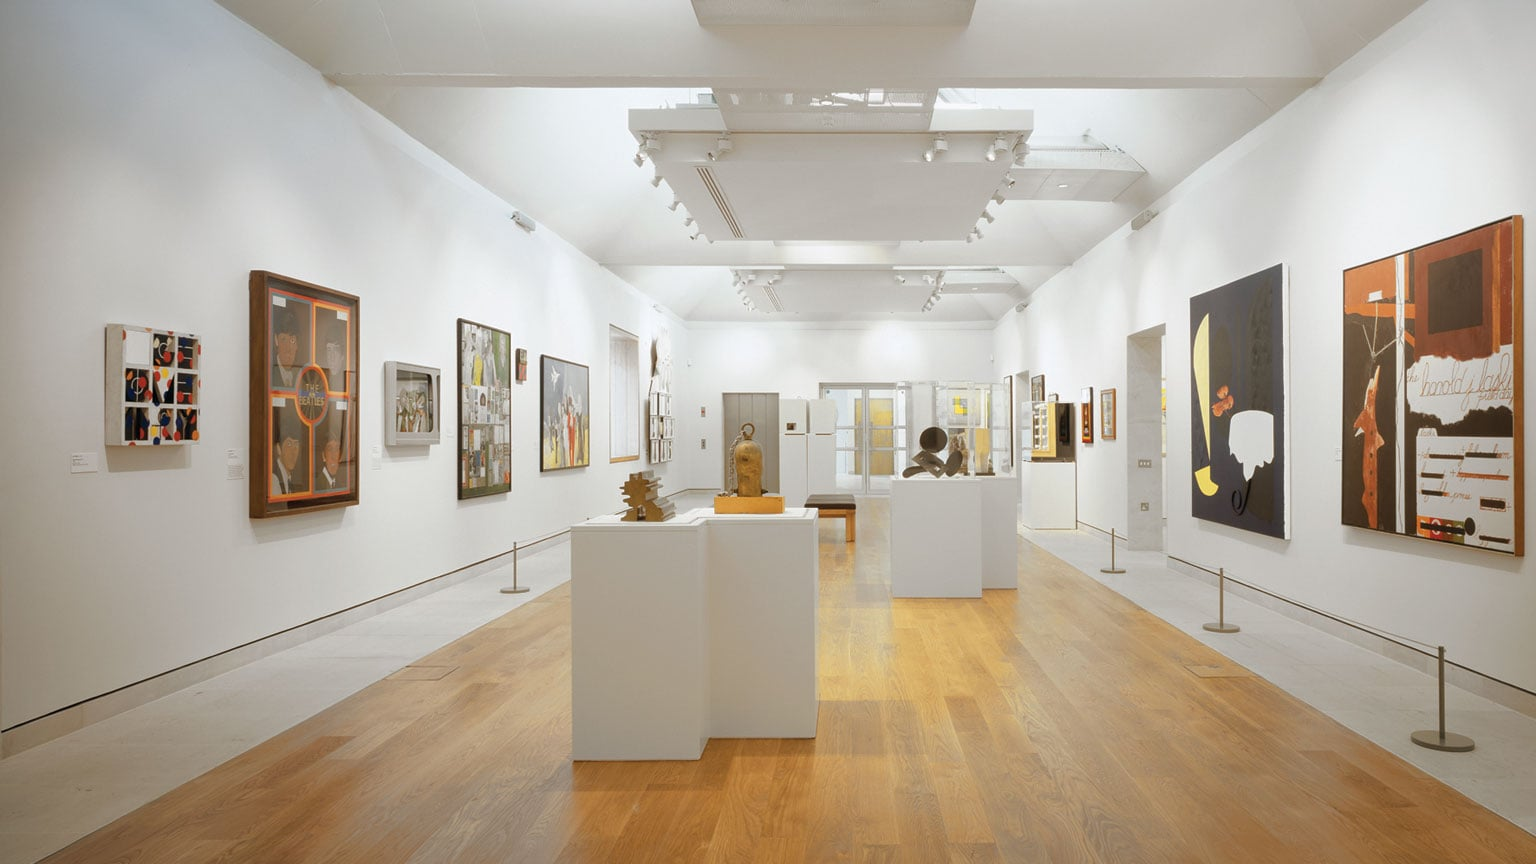 Temporary exhibition space at the Gallery